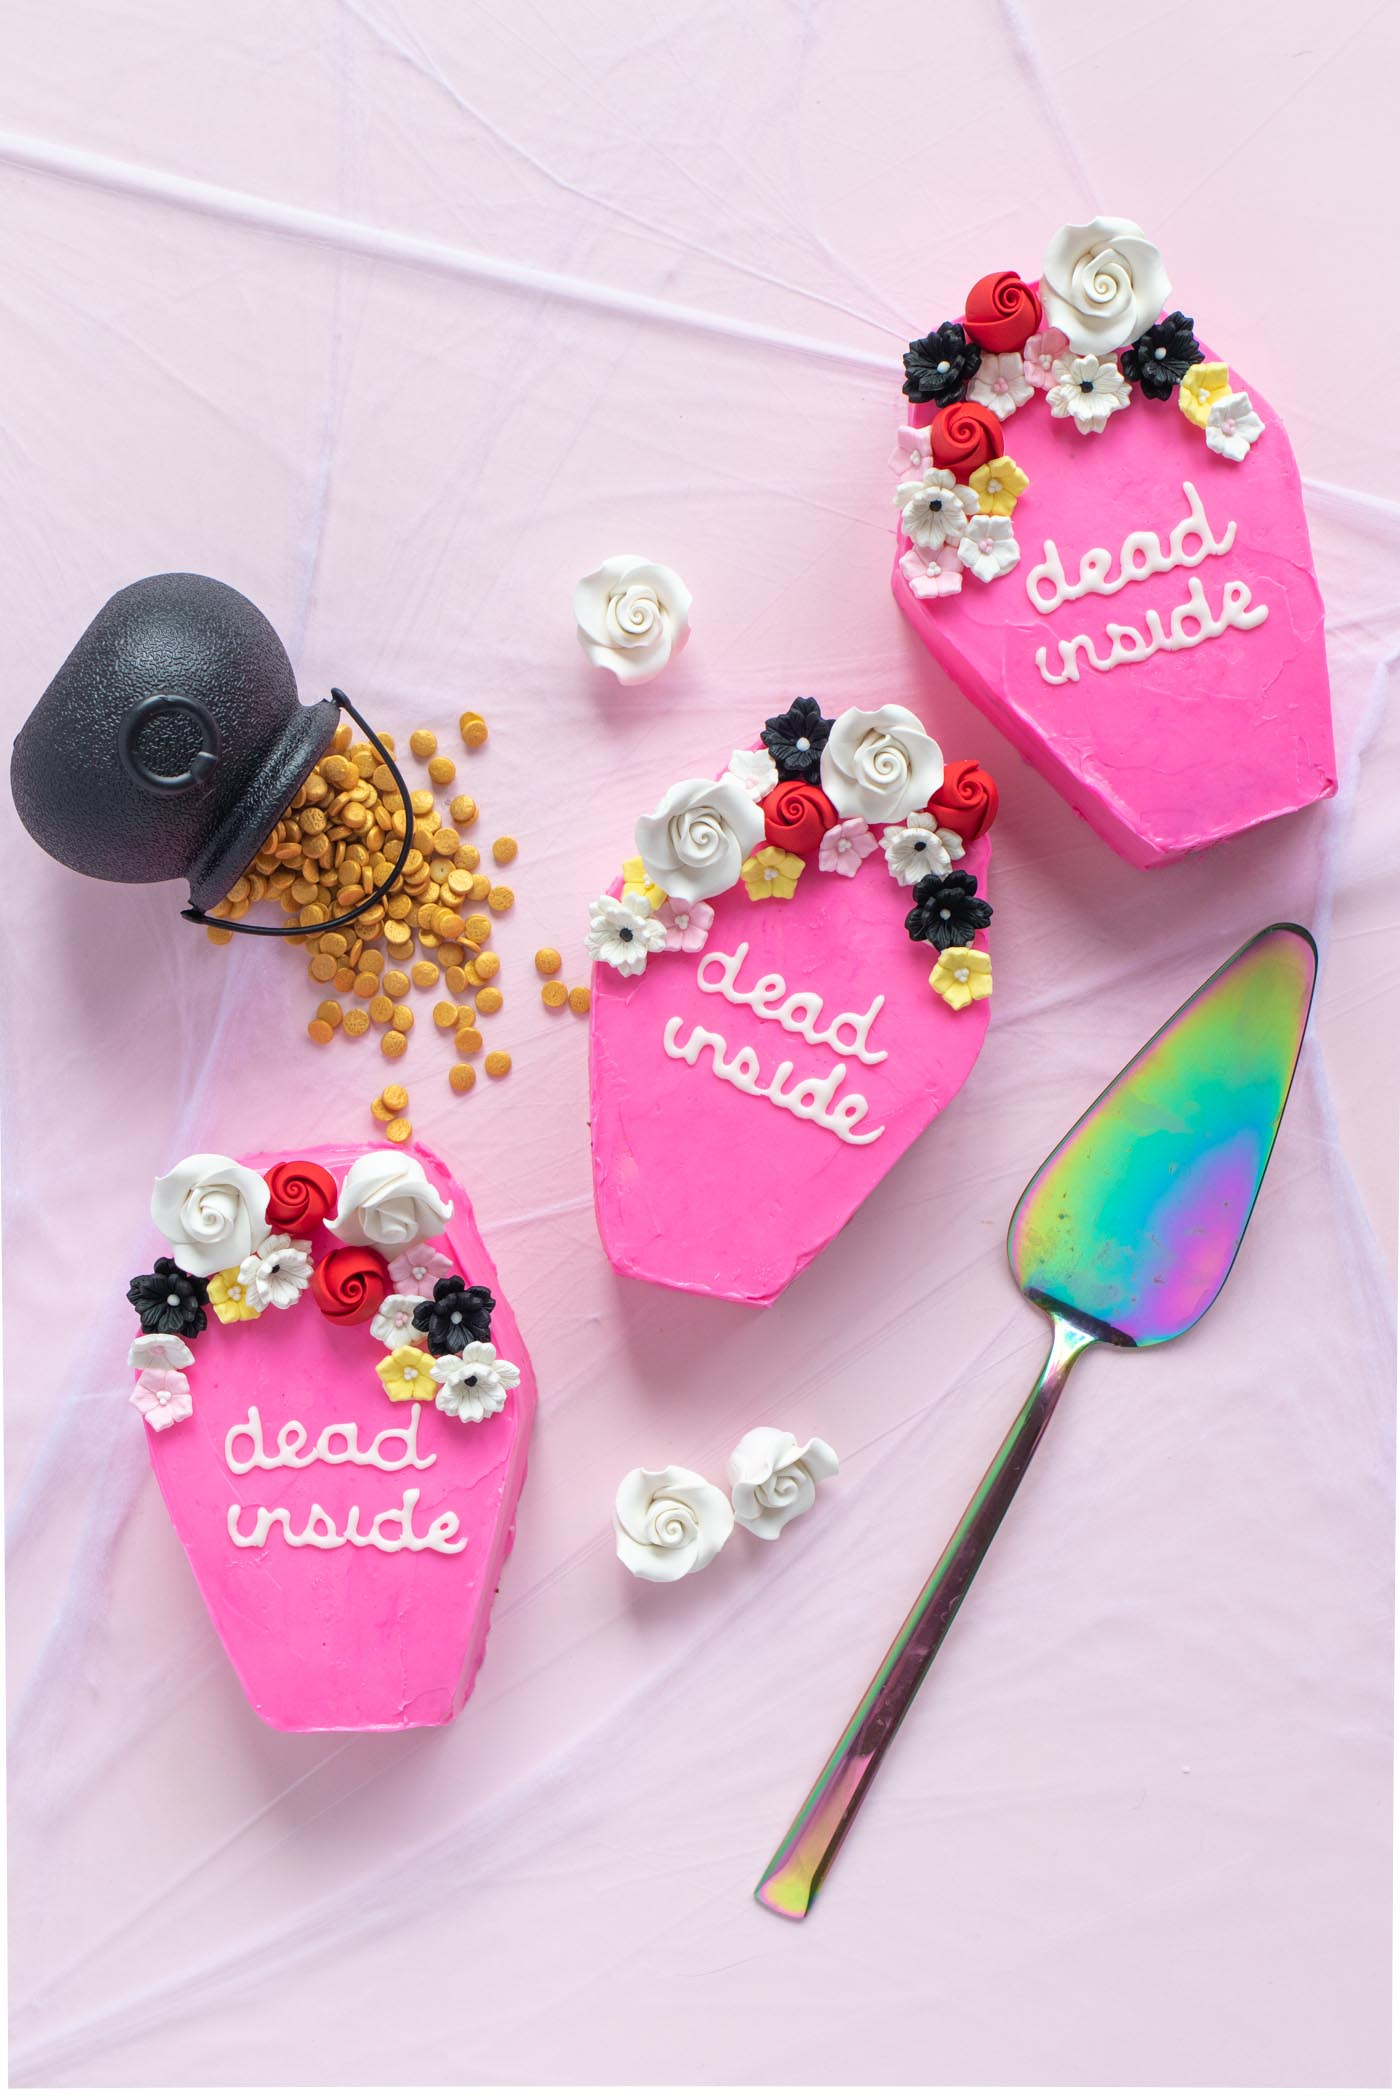 """Pink Mini Coffin Cakes for Halloween / Cute mini cakes shaped like coffins, decorated with pink frosting! Add """"dead inside"""" in royal icing and icing flowers for a fun Halloween treat #halloween #halloweendessert #halloweentreat #coffin #frosting #cakedecorating #holidaybaking #halloweenbaking"""